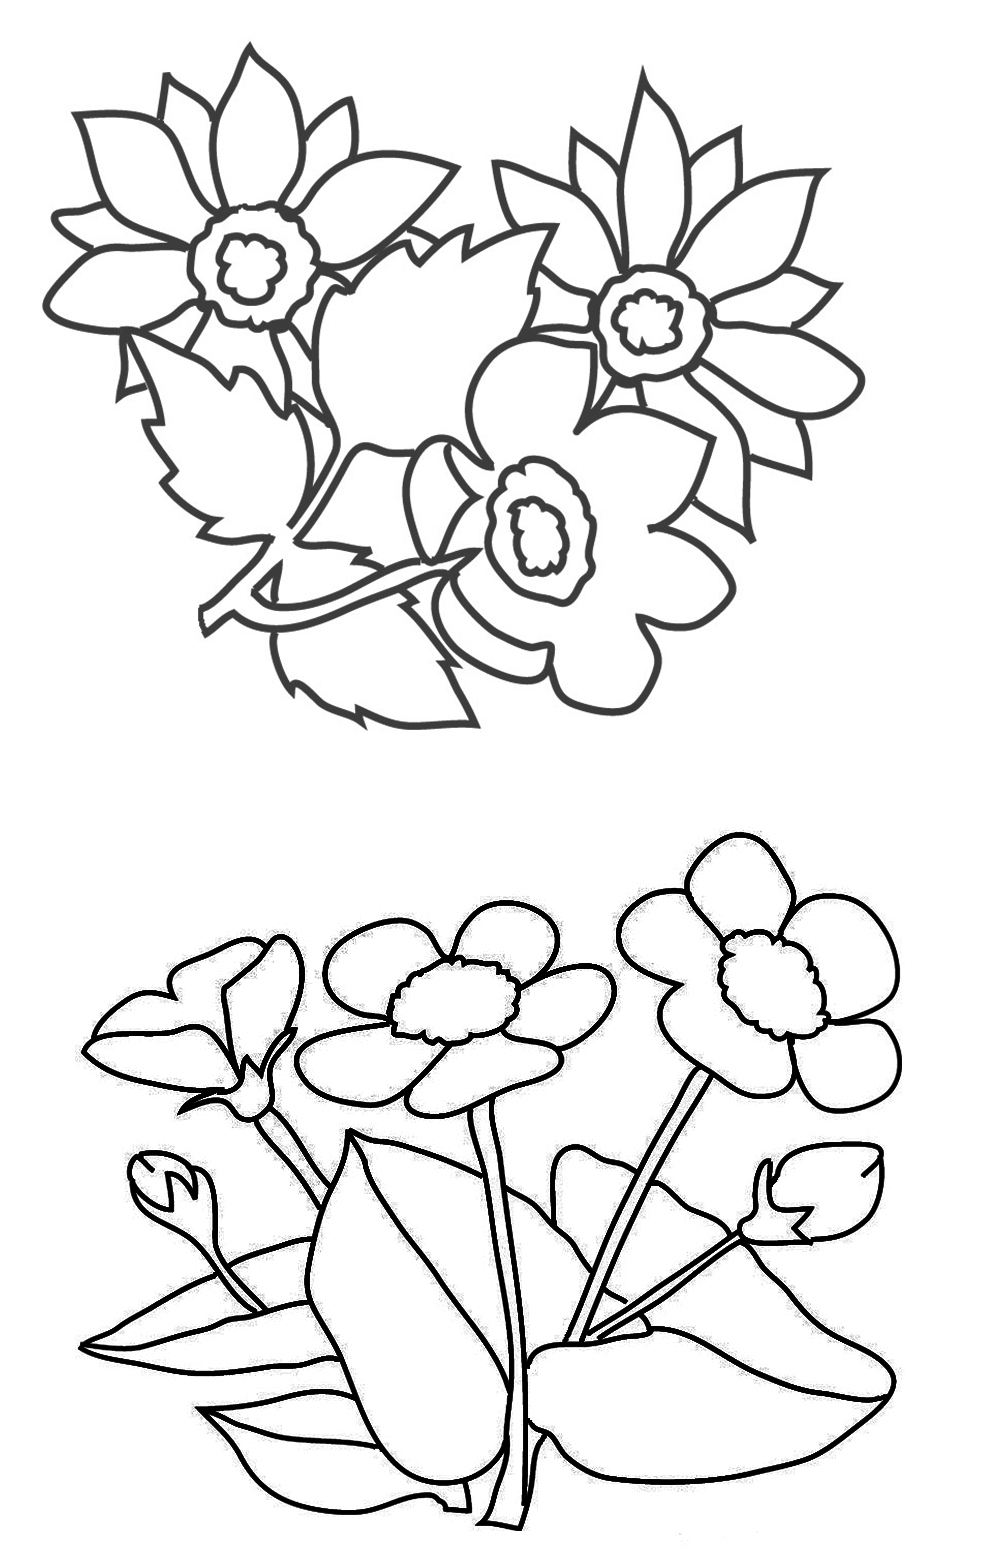 flower coloring sheet flower coloring pages flower sheet coloring